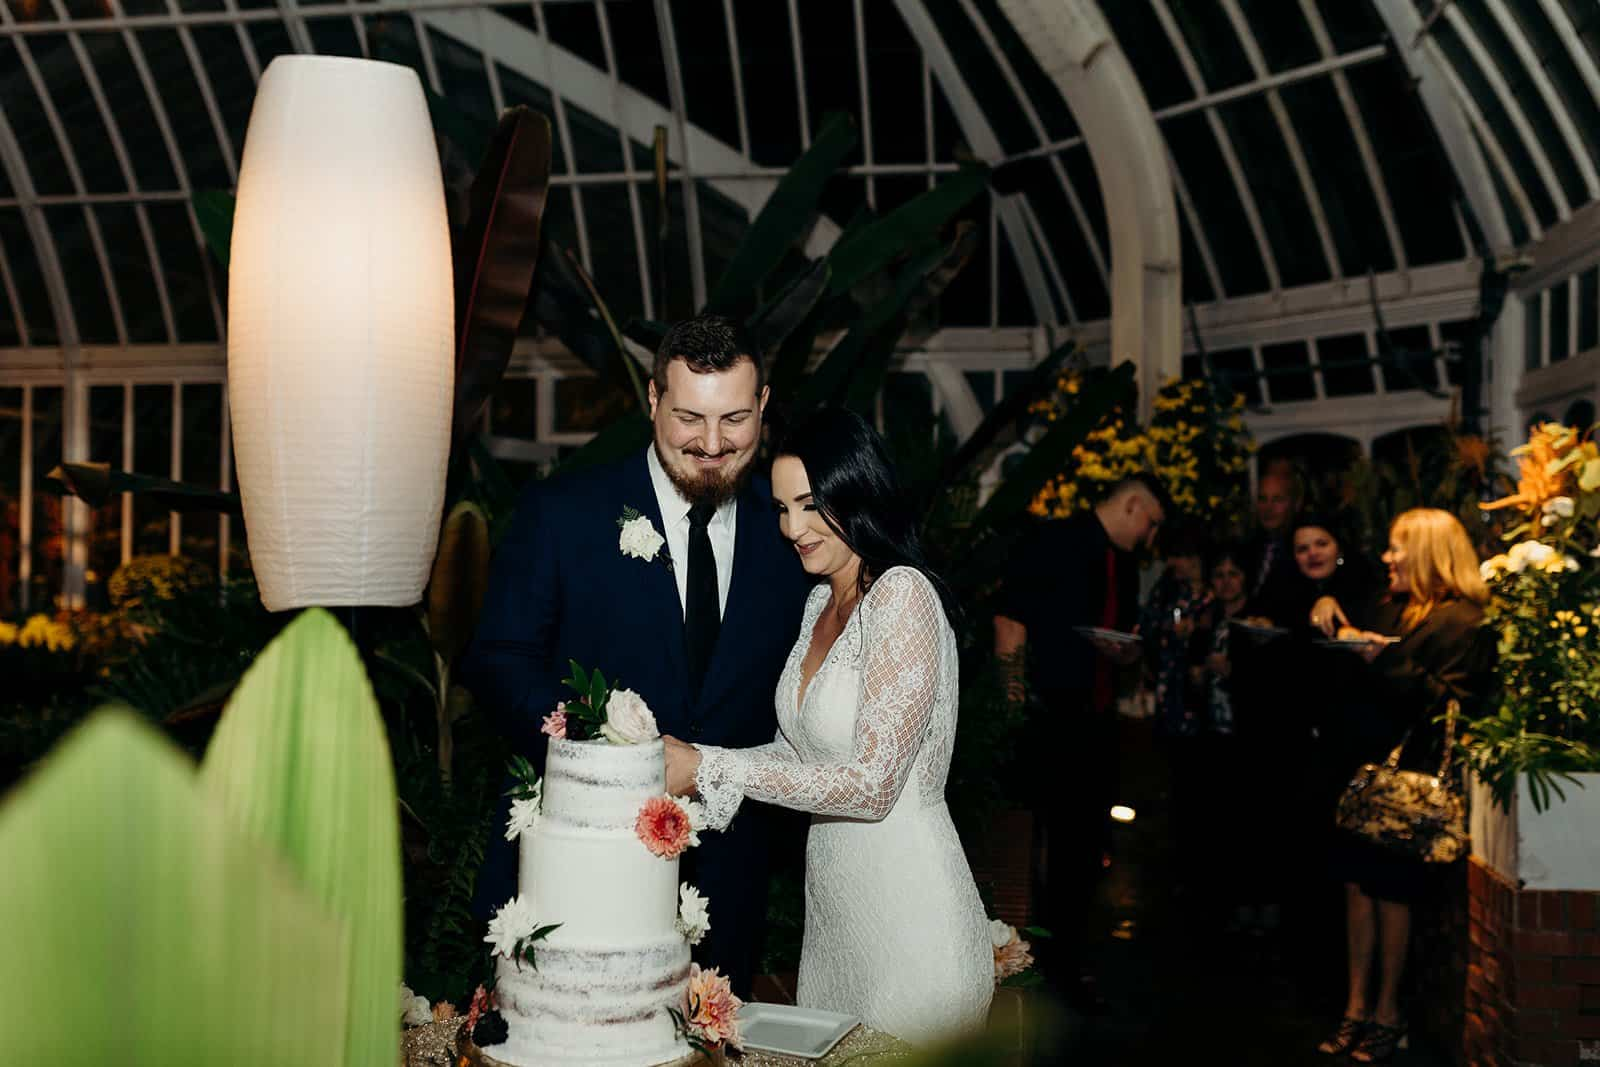 Cake cutting at a Phipps Conservatory wedding